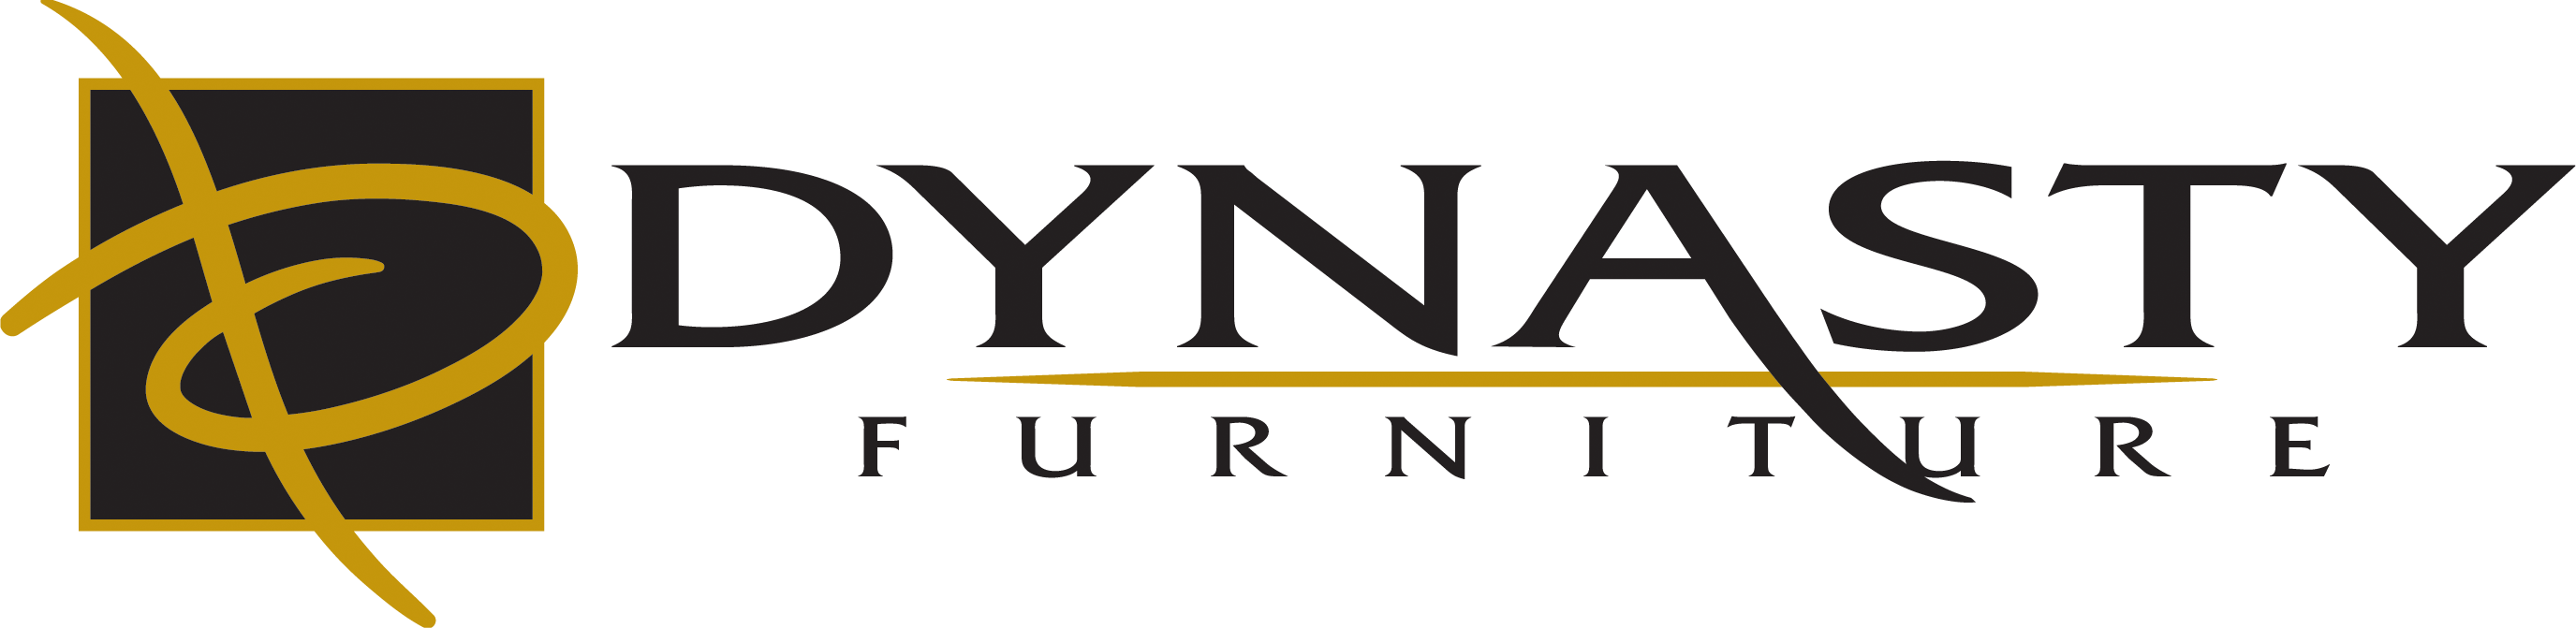 Dynasty Furniture